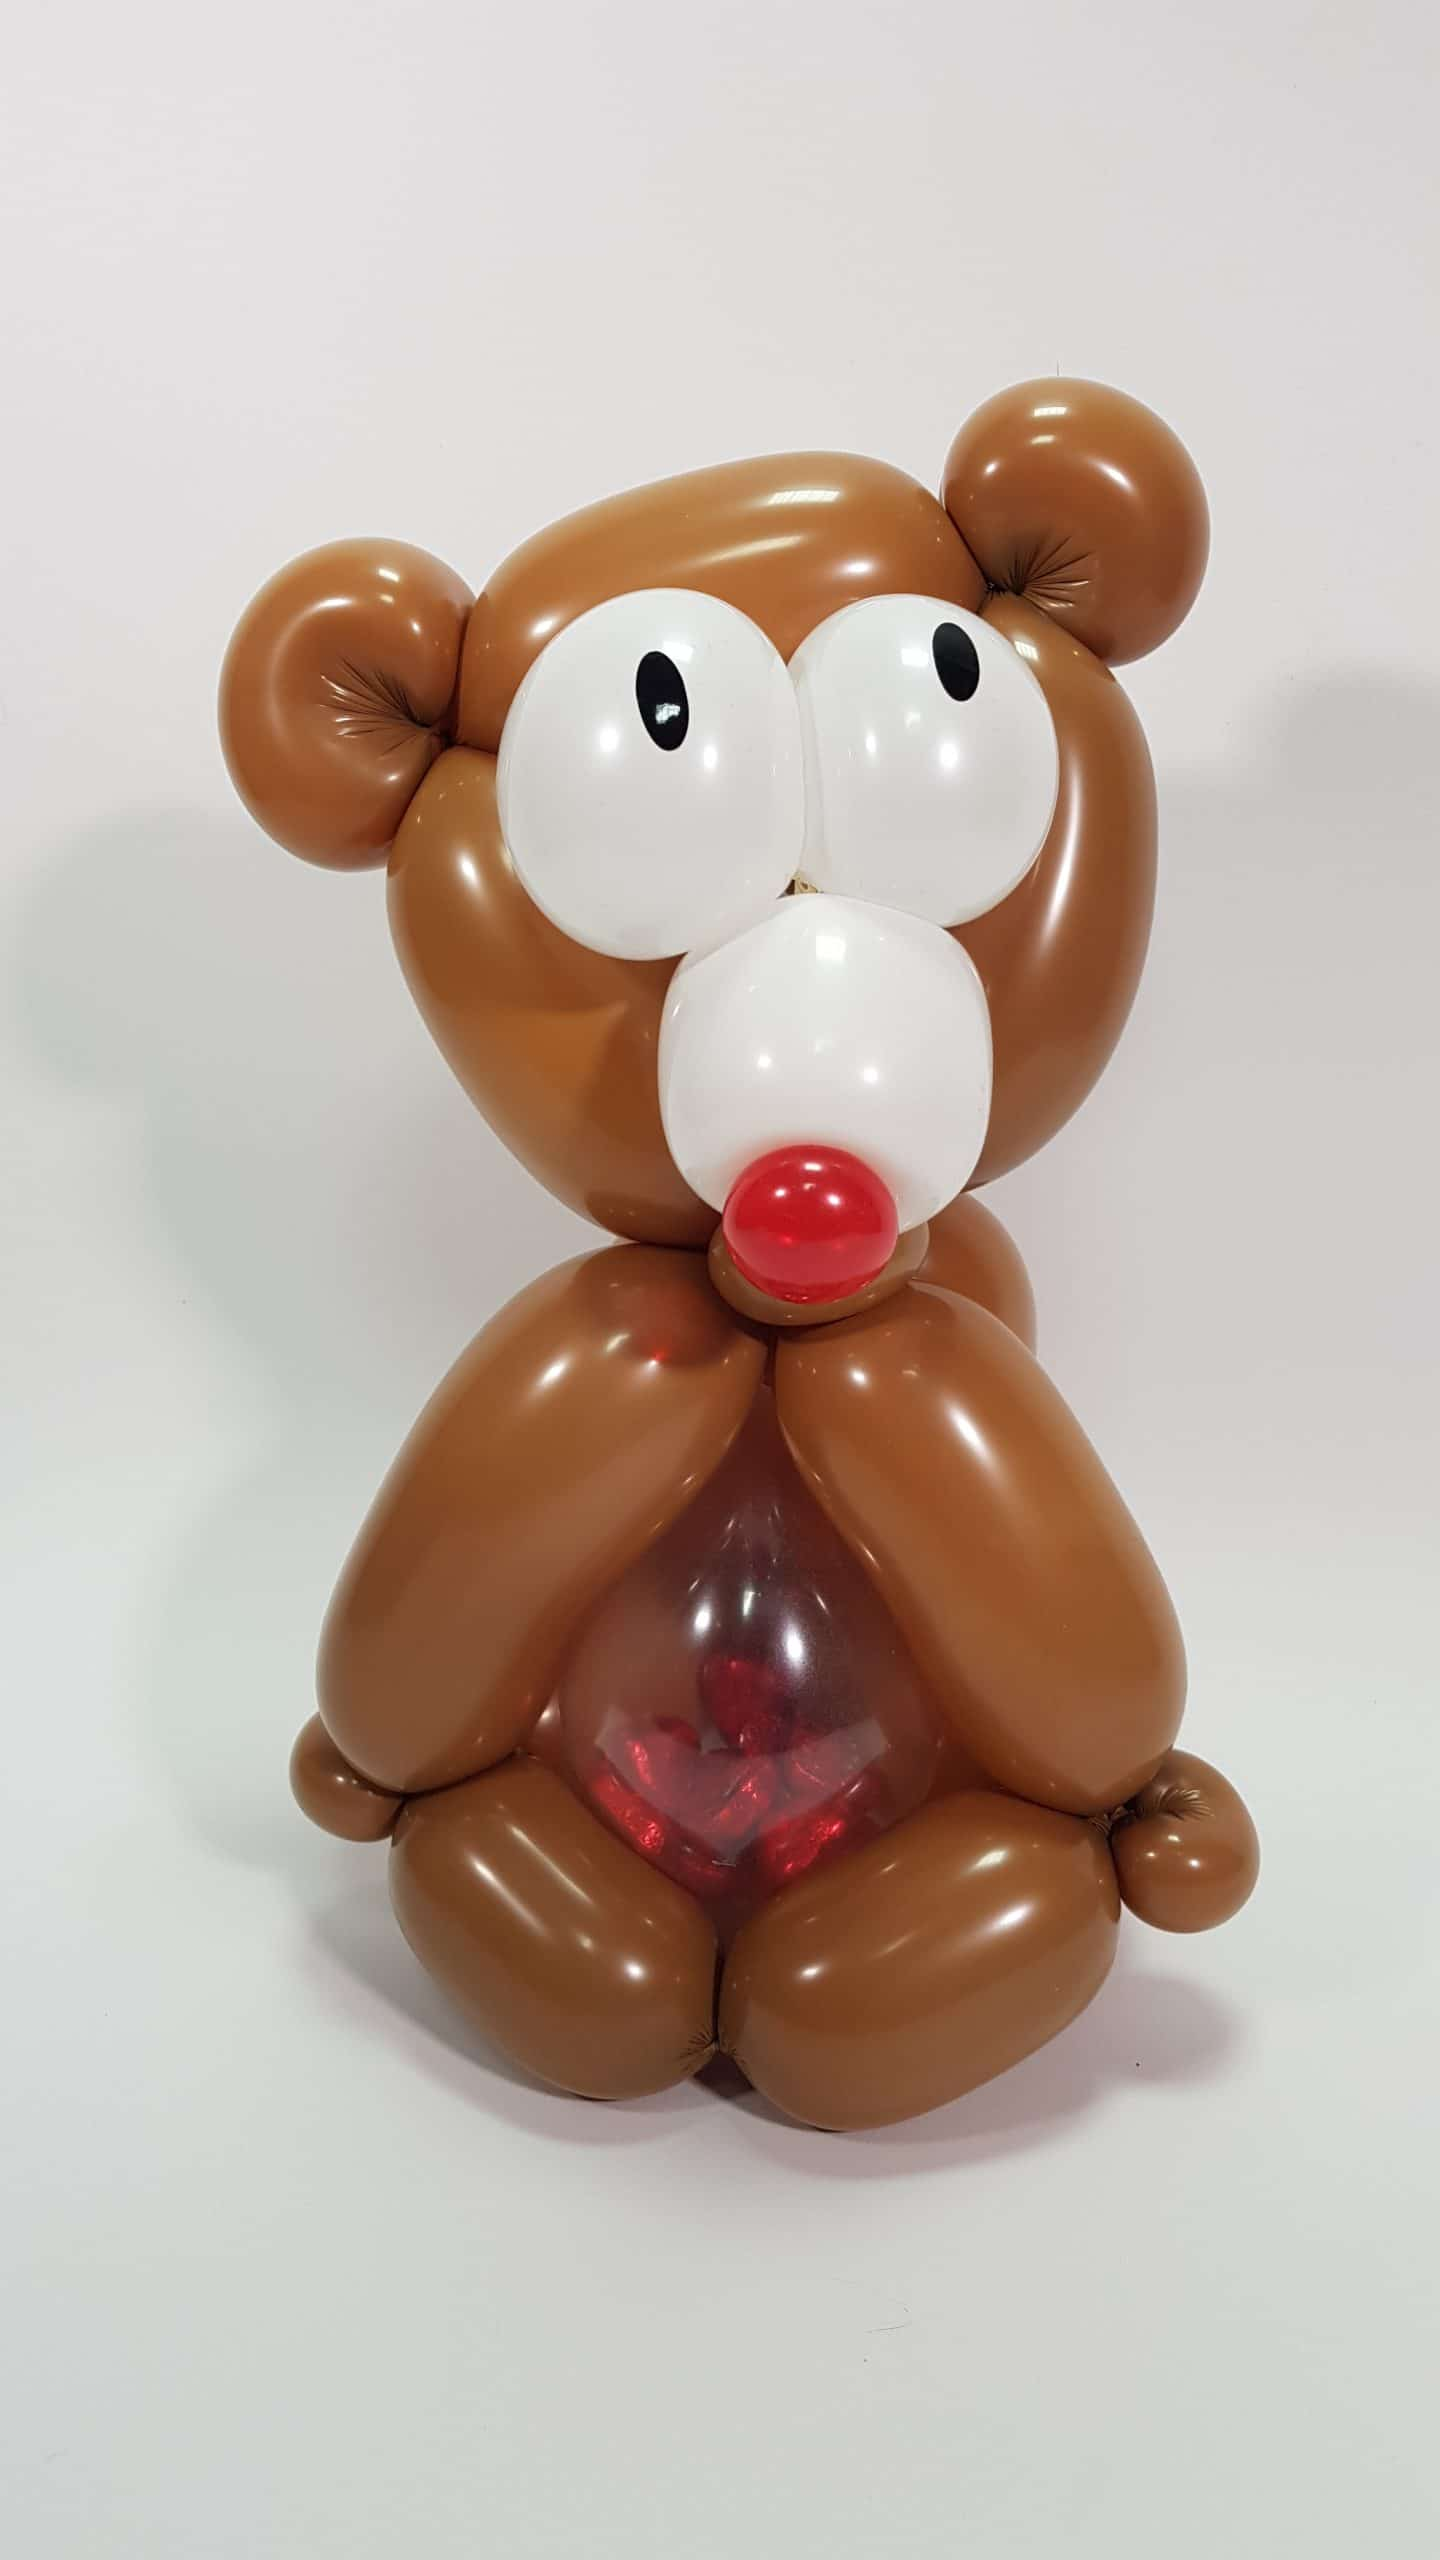 Valentines mini stuffed bear available from Cardiff Balloons